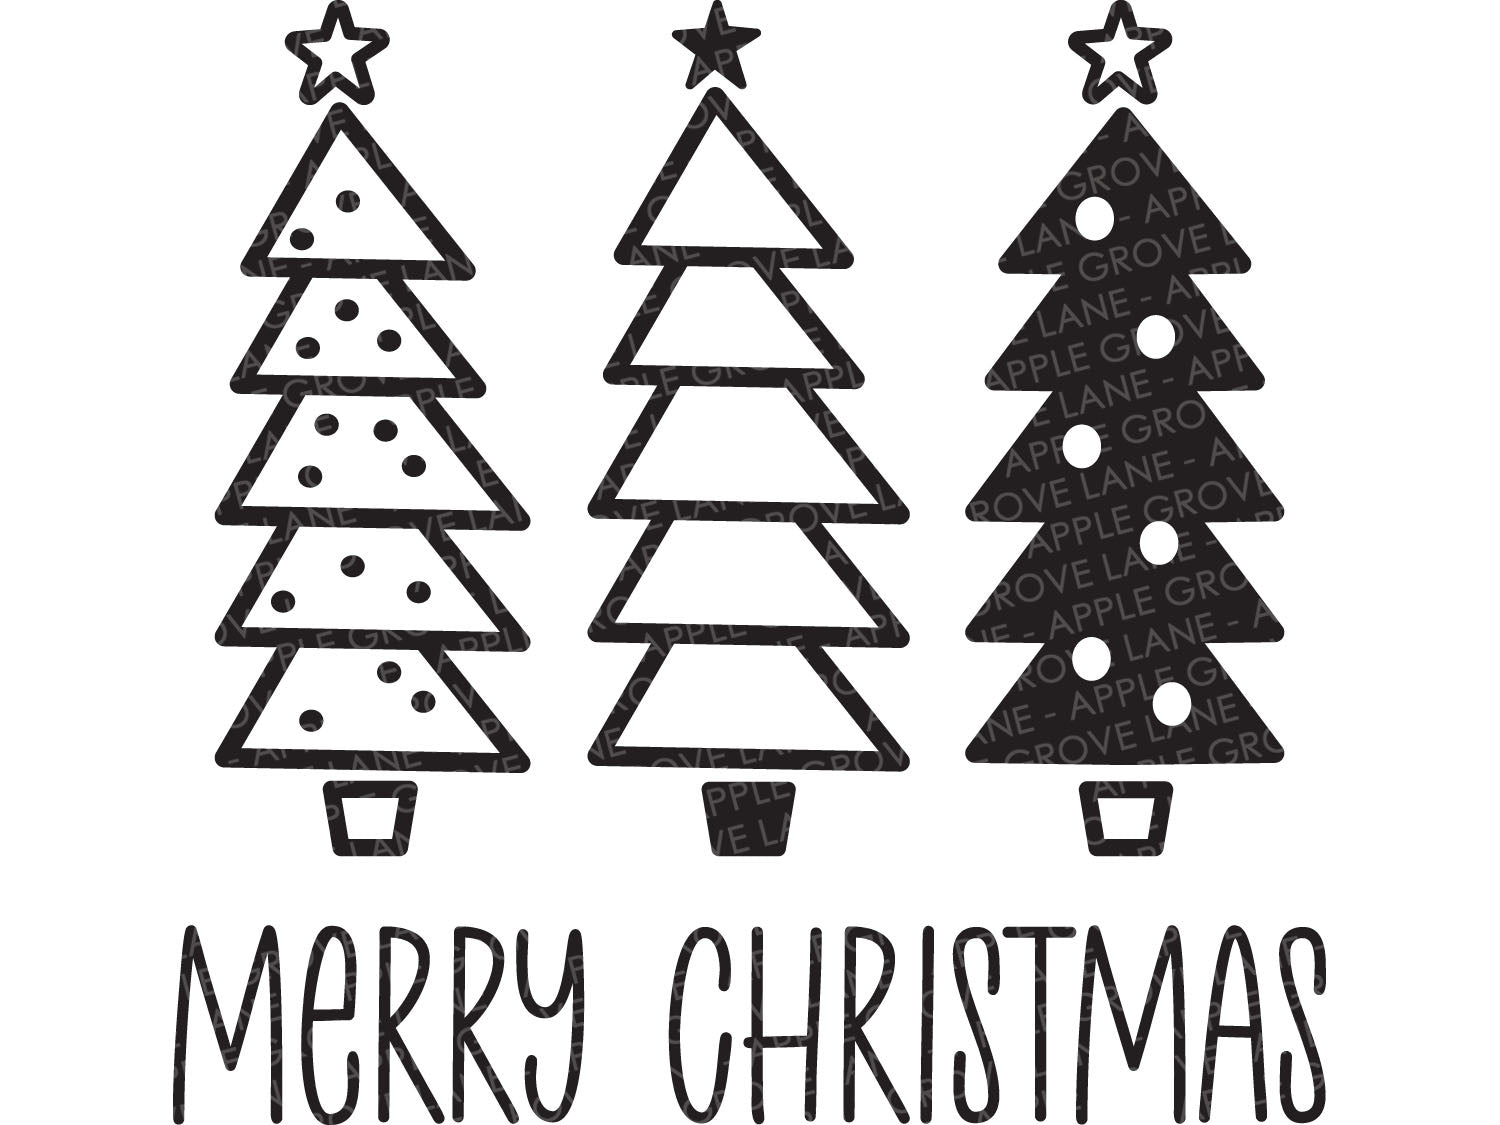 Merry Christmas Svg - Christmas Tree SVG - Christmas Svg - Christmas Sign Svg - Christmas Trees Svg - Christmas Shirt Svg Eps Dxf Png